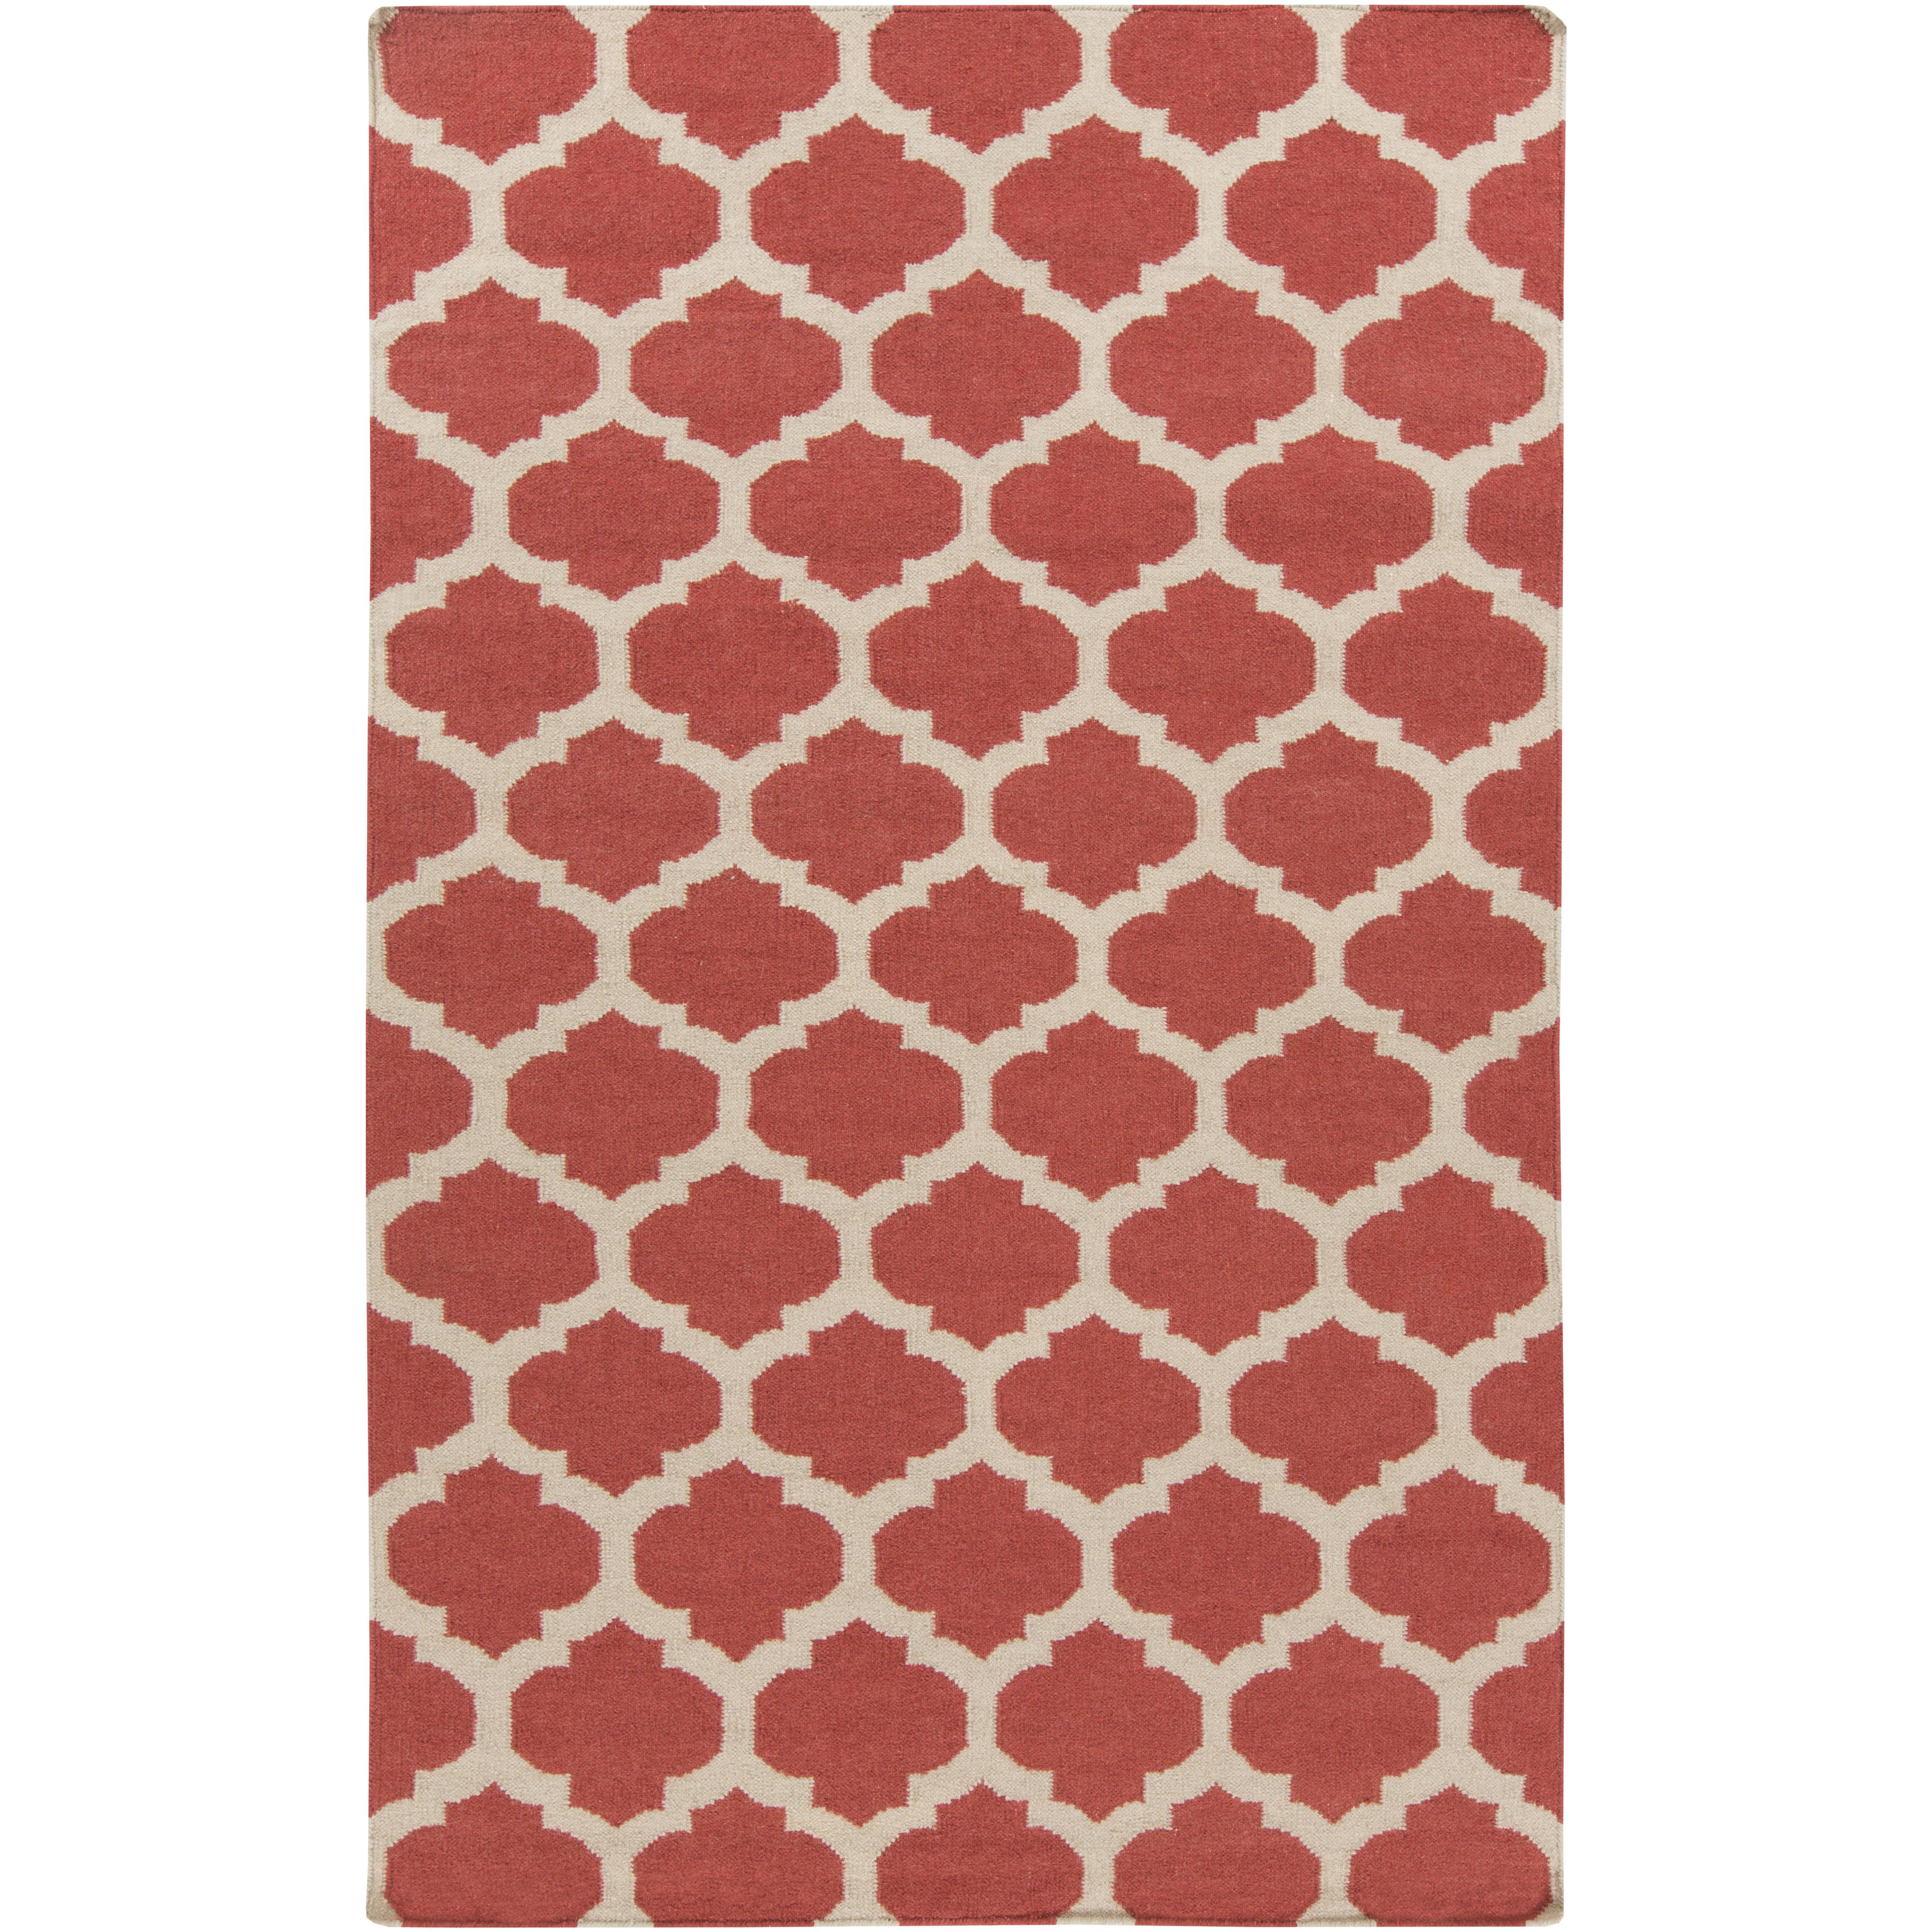 Surya Rugs Frontier 5' x 8' - Item Number: FT542-58